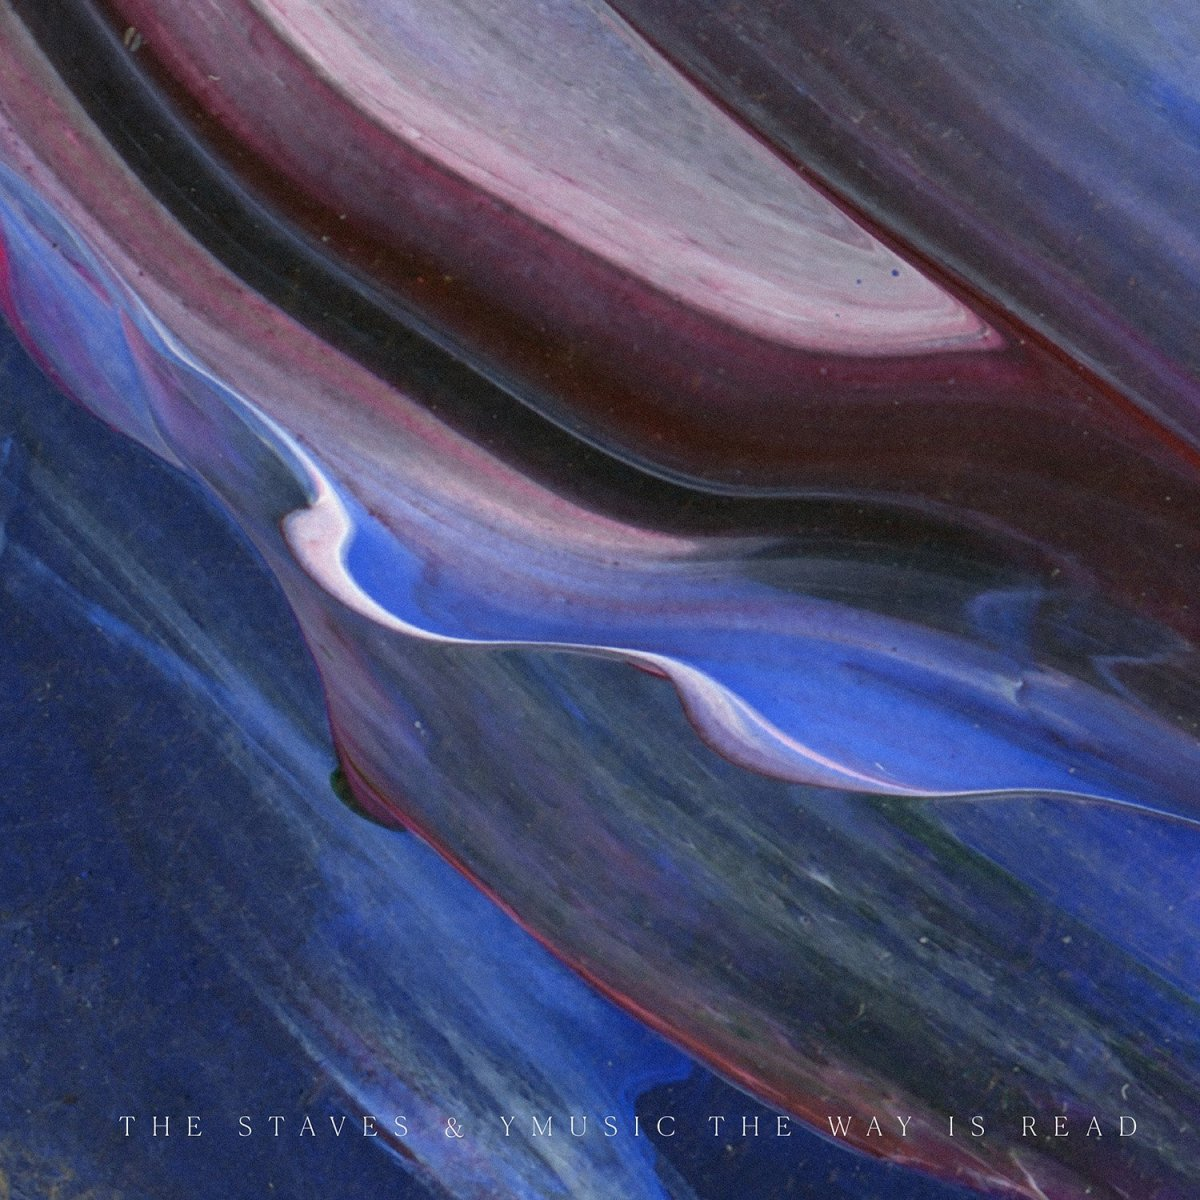 Album Review: The Staves & yMusic - The Way Is Read